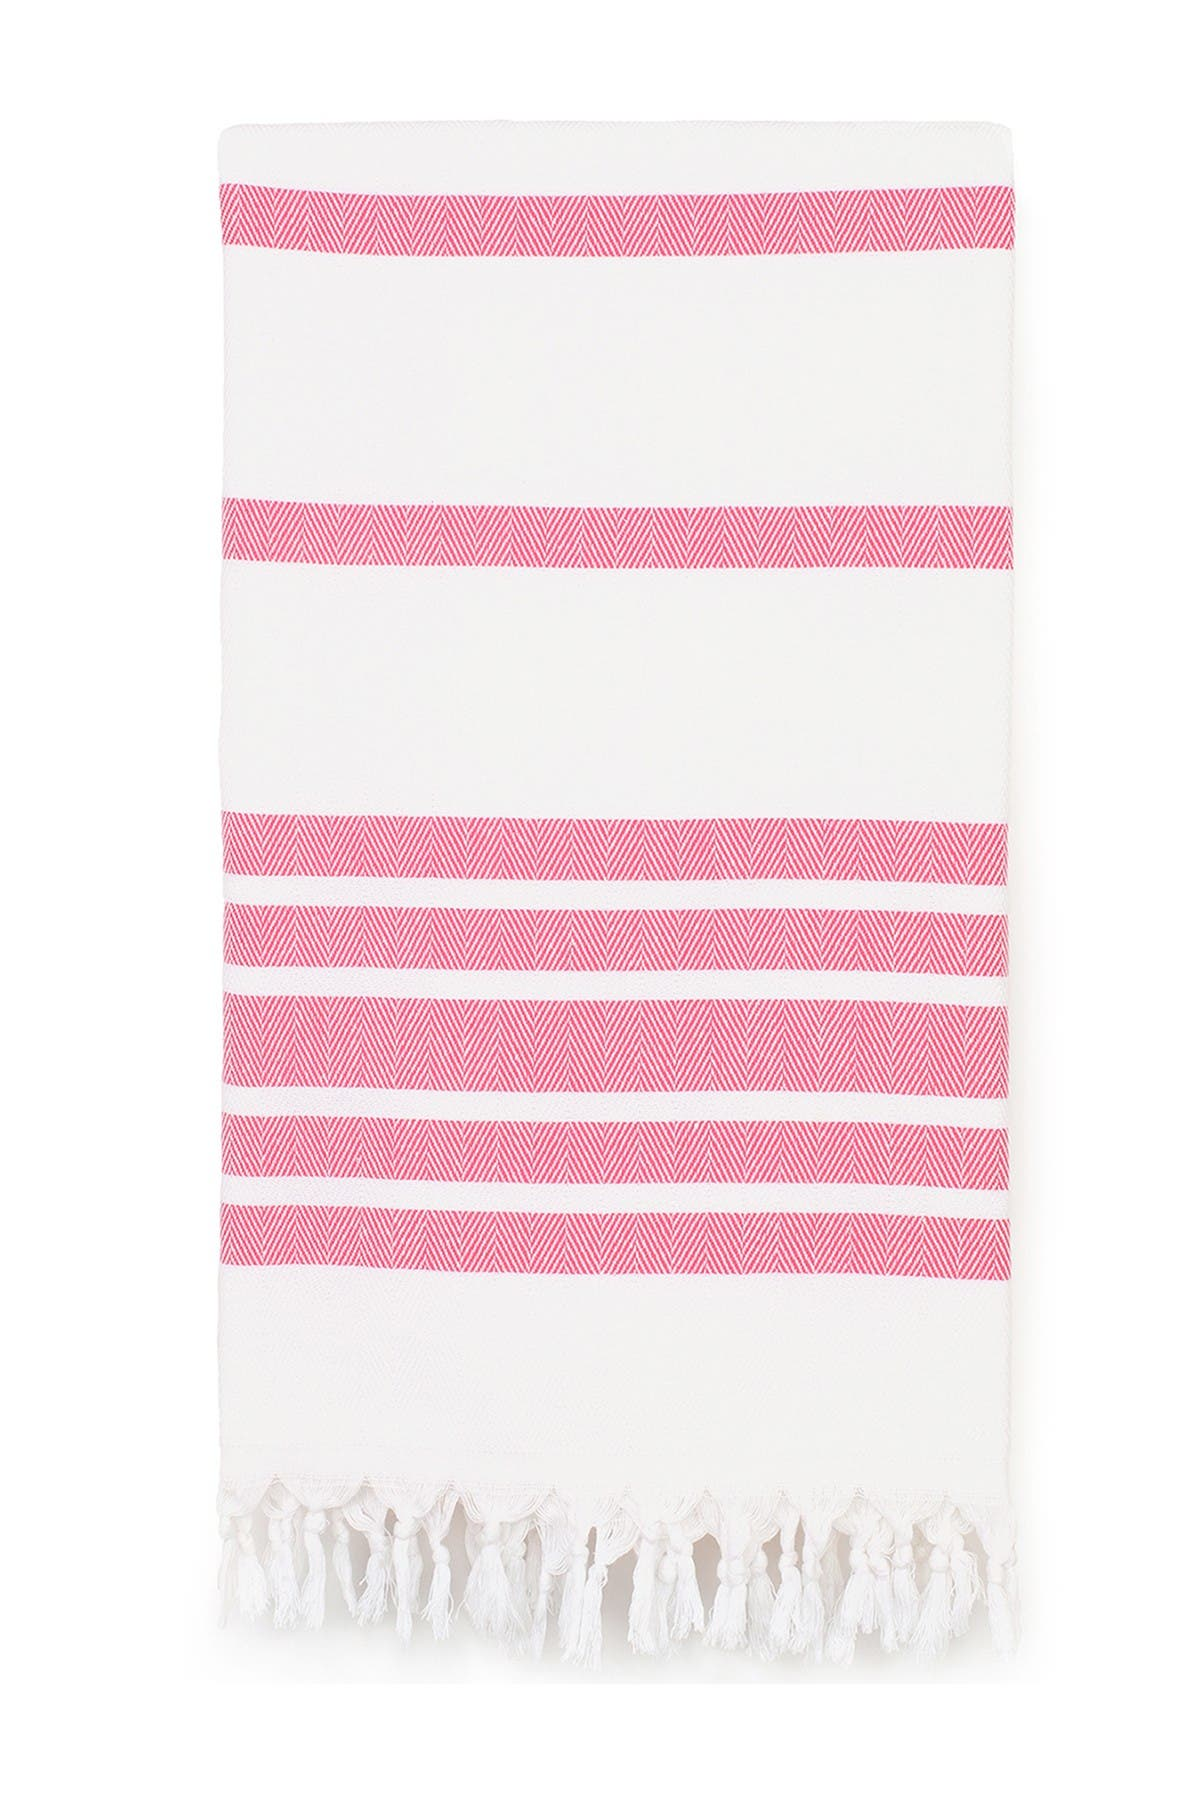 Image of LINUM HOME 100% Turkish Cotton Herringbone Pestemal Beach Towel - Pink & White